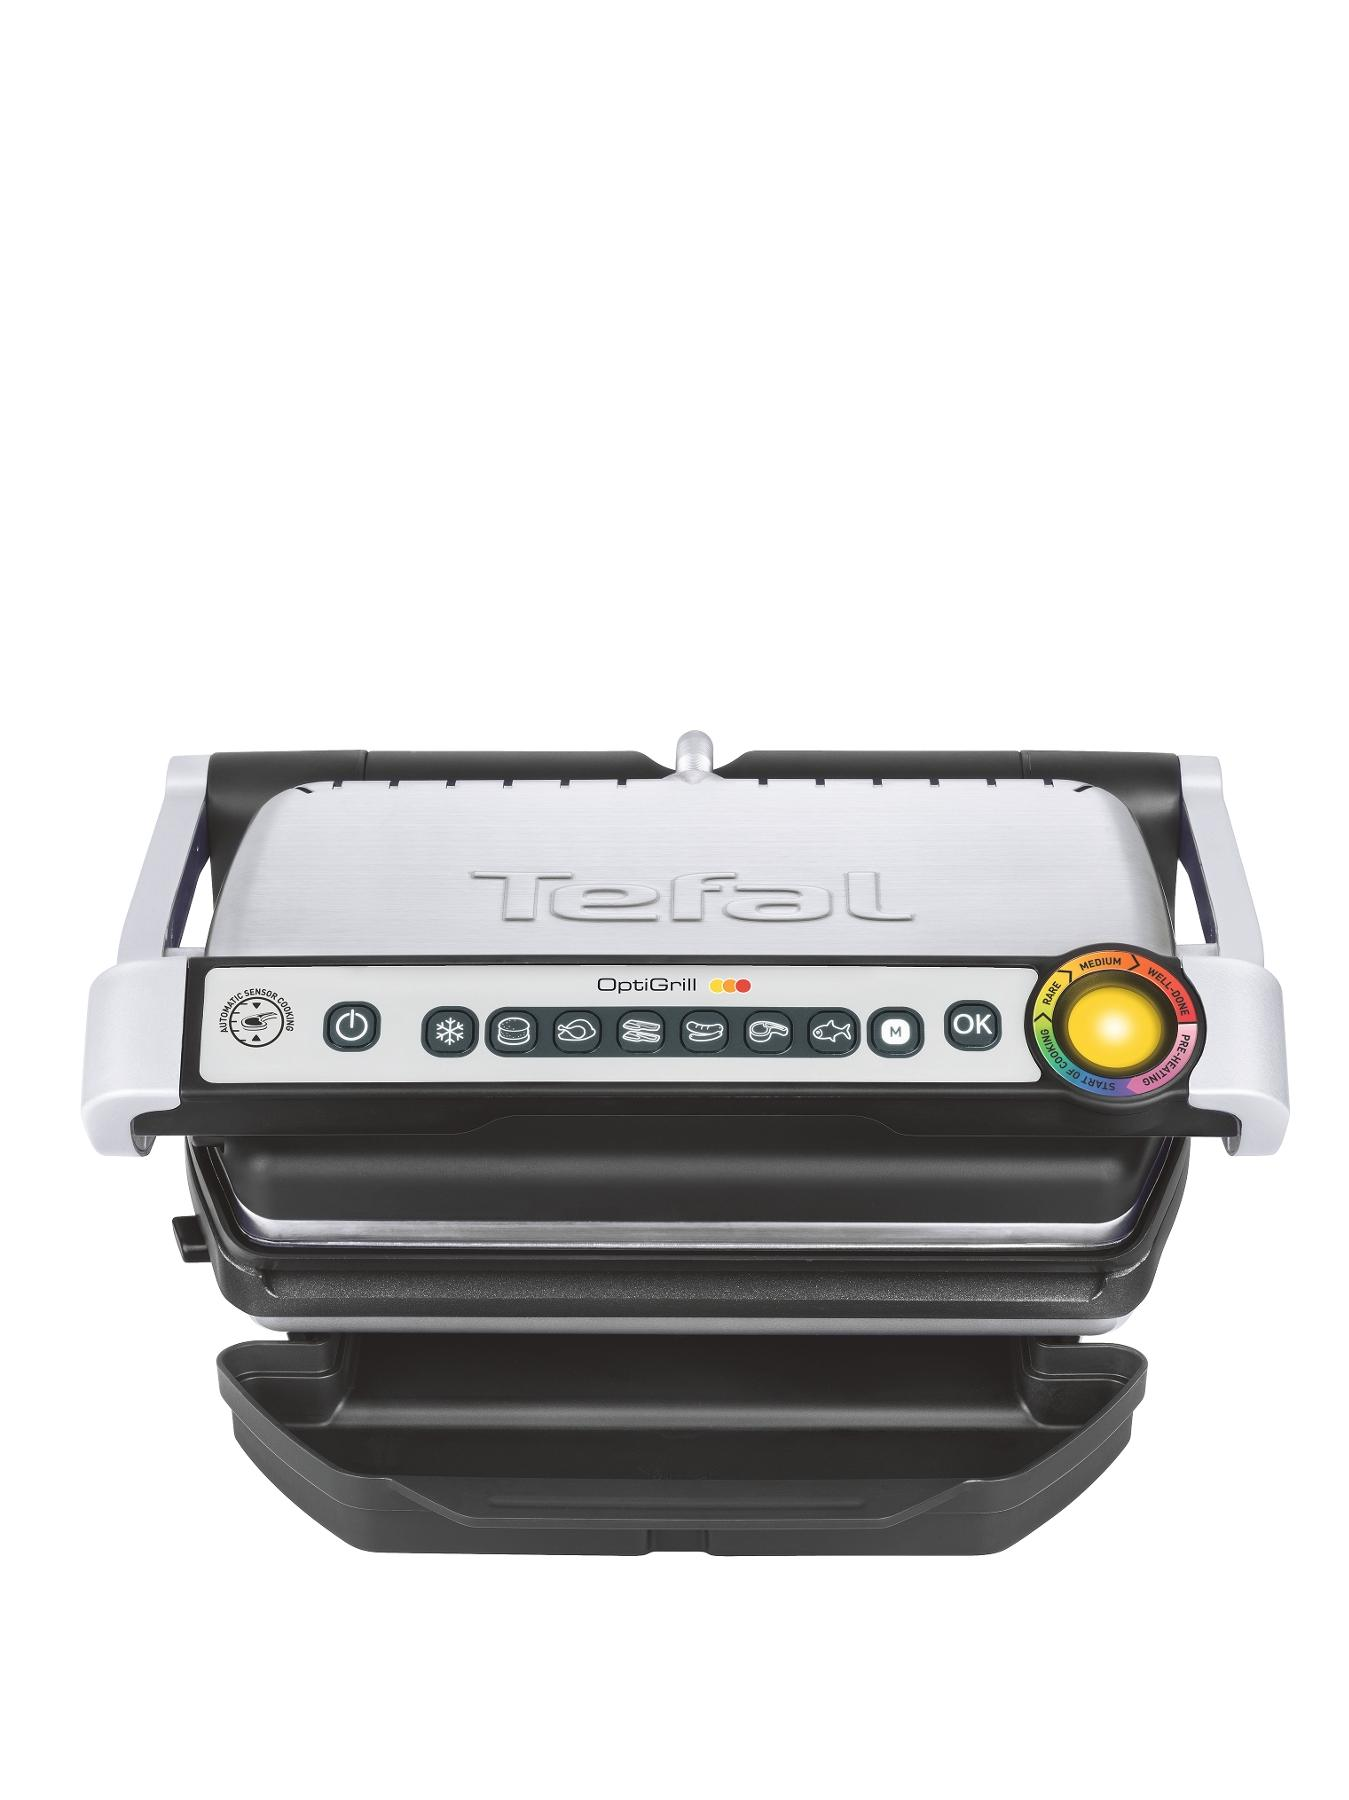 GC701D40 2000-watt Optigrill